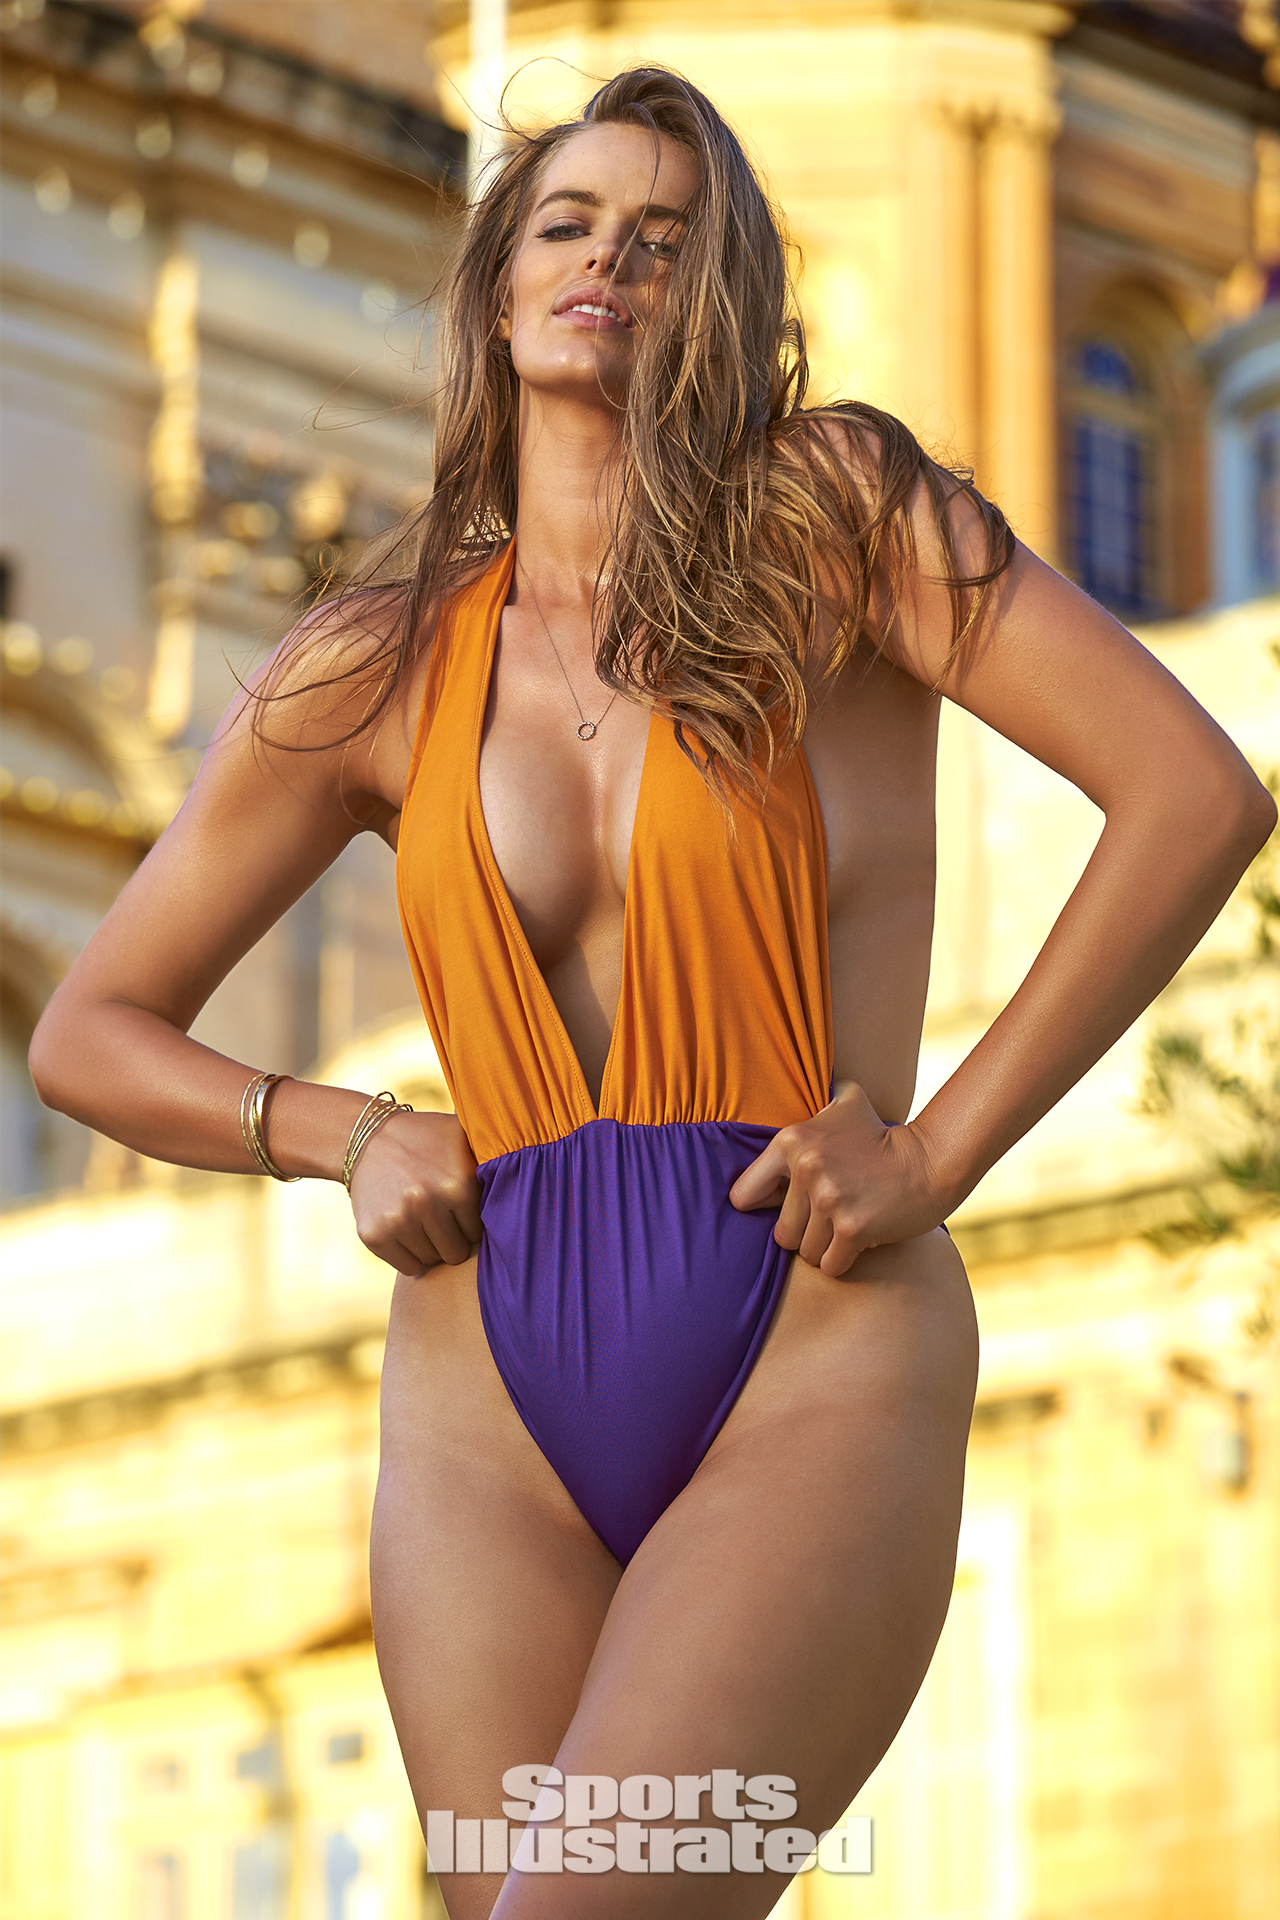 Robyn Lawley was photographed by Ben Watts in Malta. Swimsuit by Indie Soul.